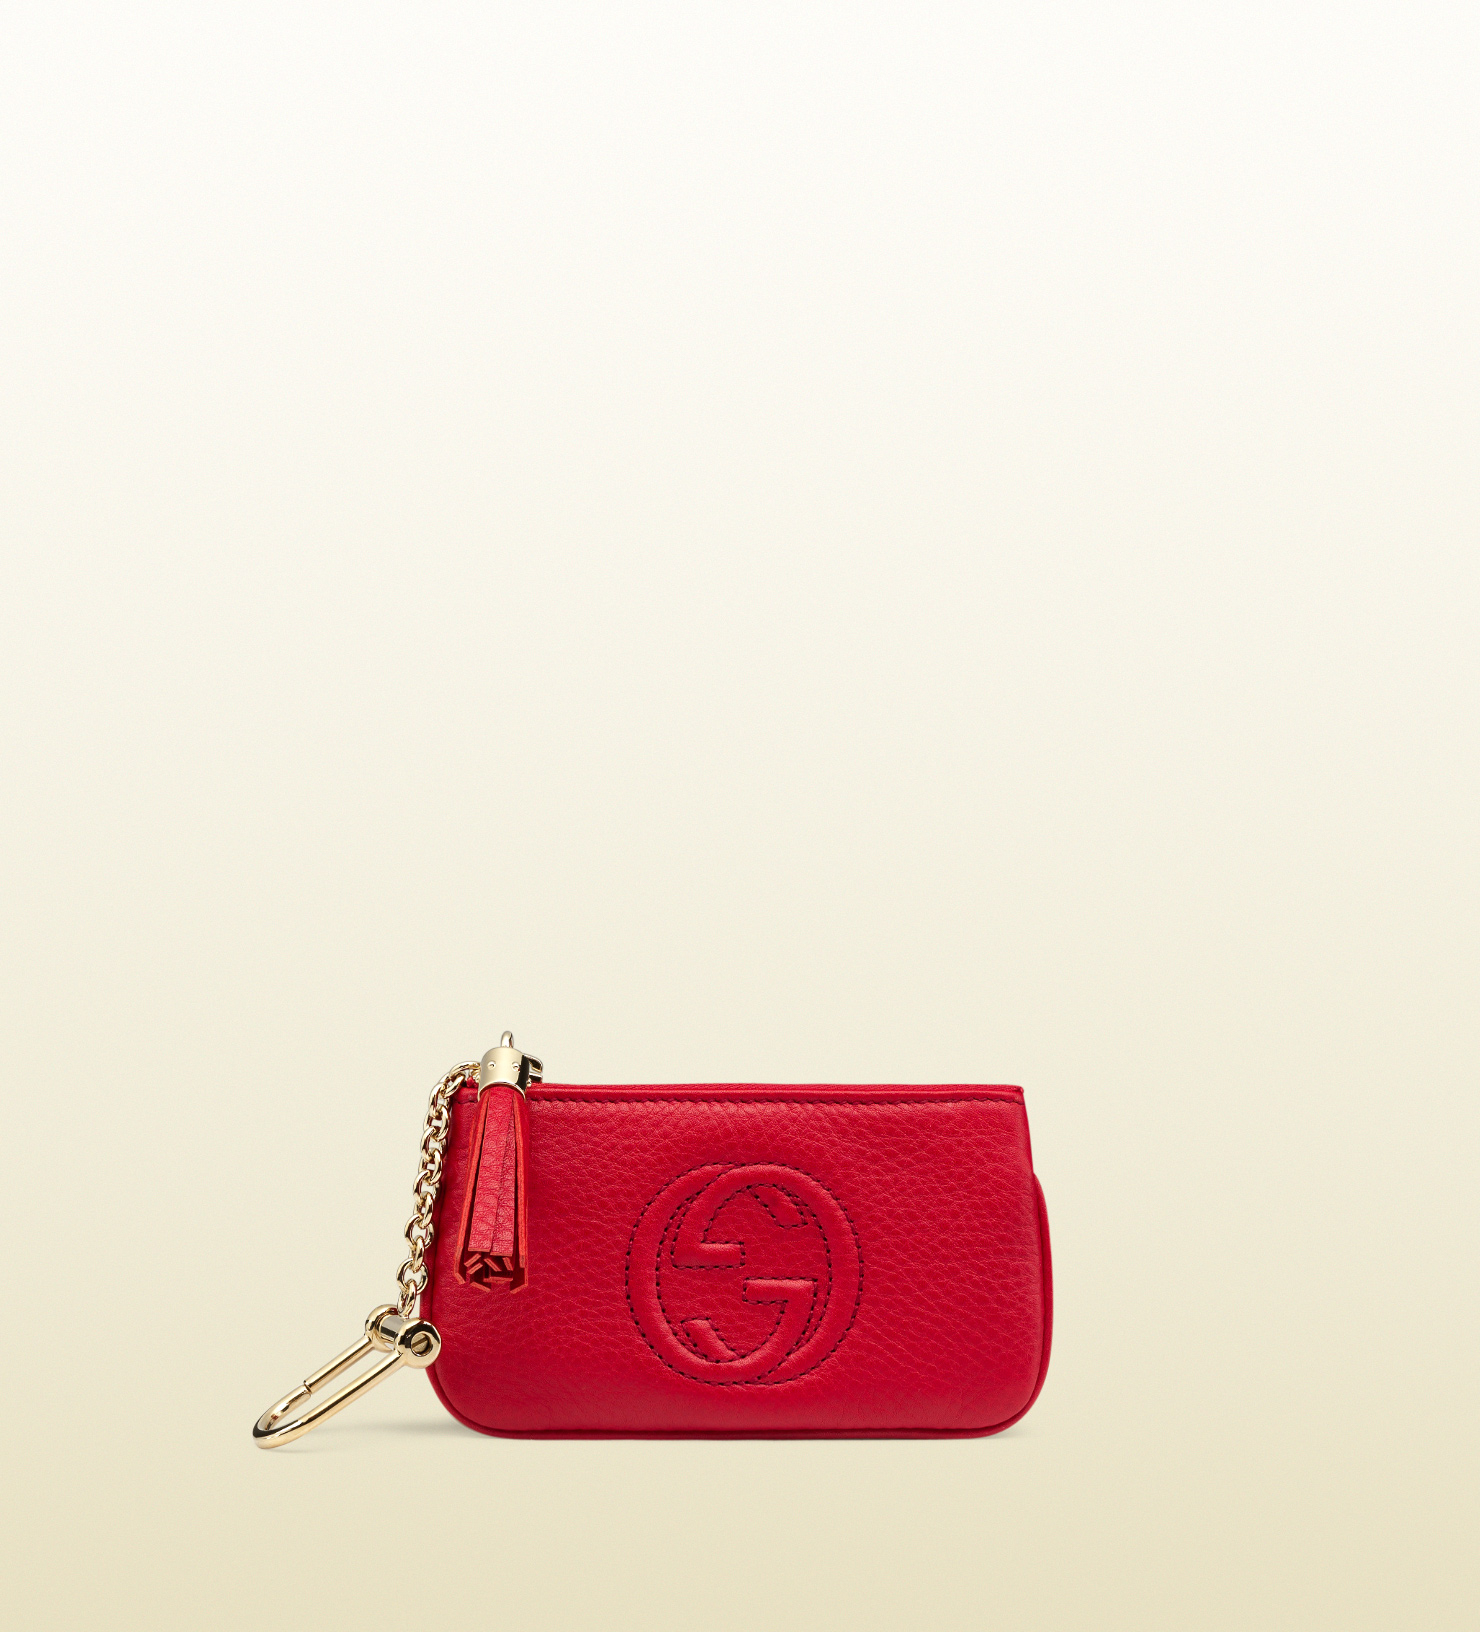 458ed56c5 Gucci Soho Leather Key Case in Red - Lyst